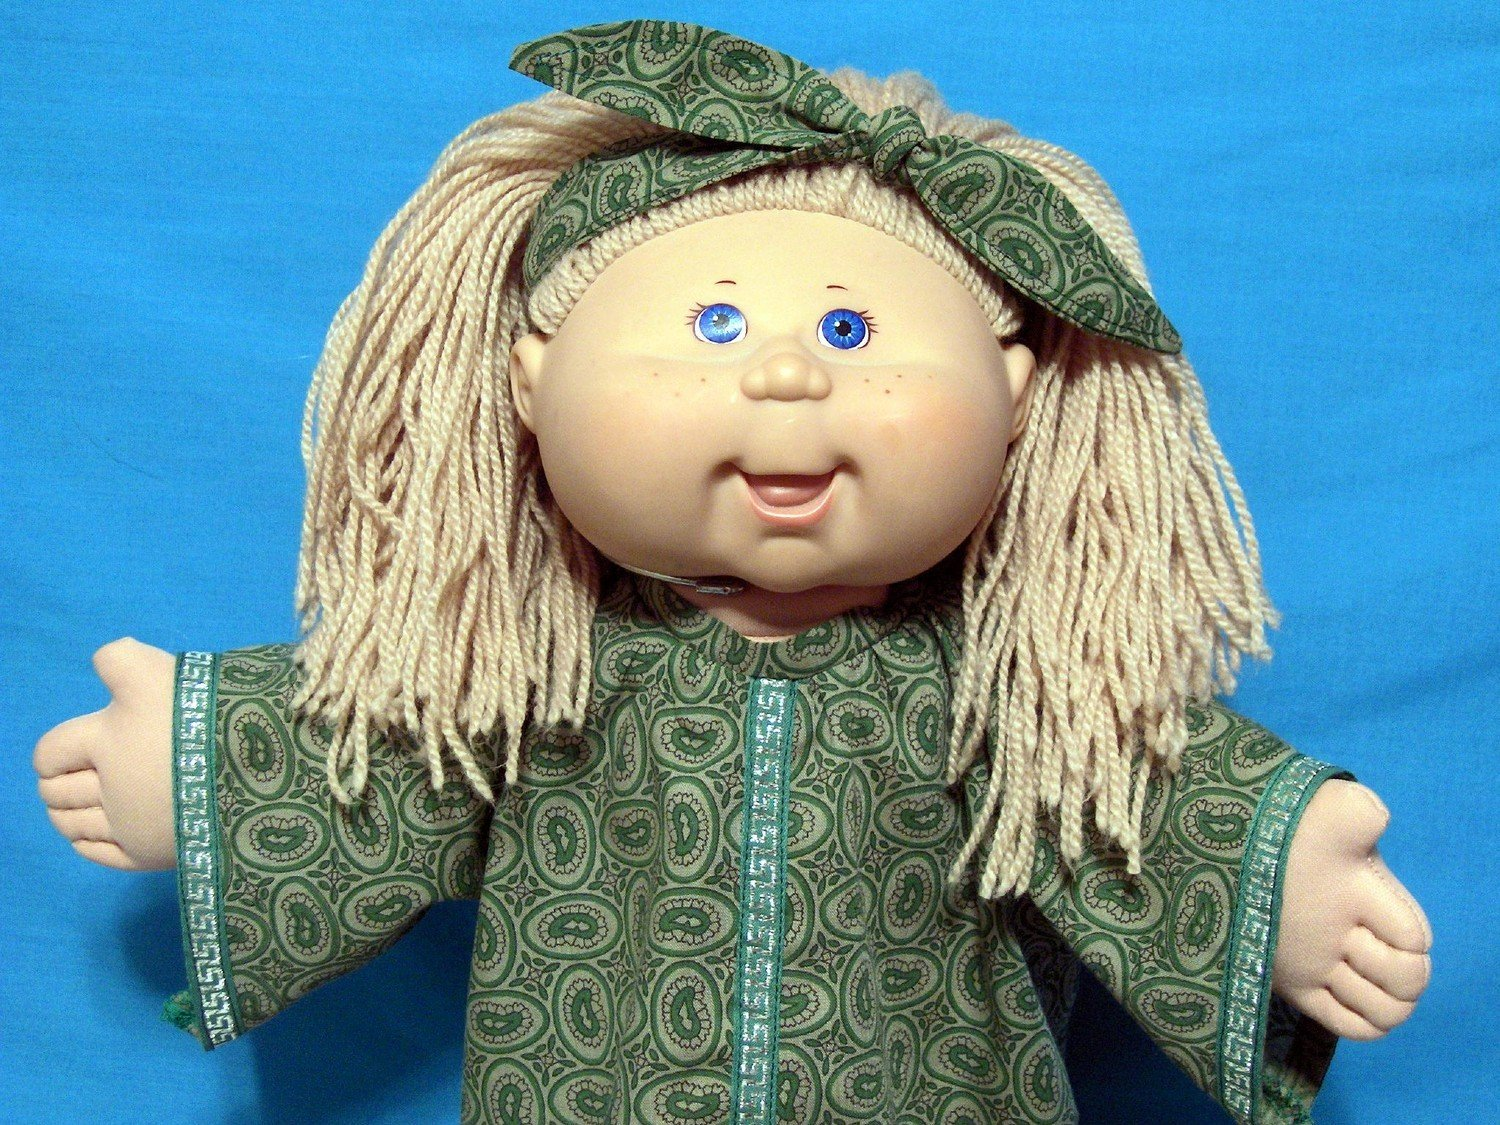 Dress n Hair Topknot Bow for Cabbage Patch Doll or 18 inch doll